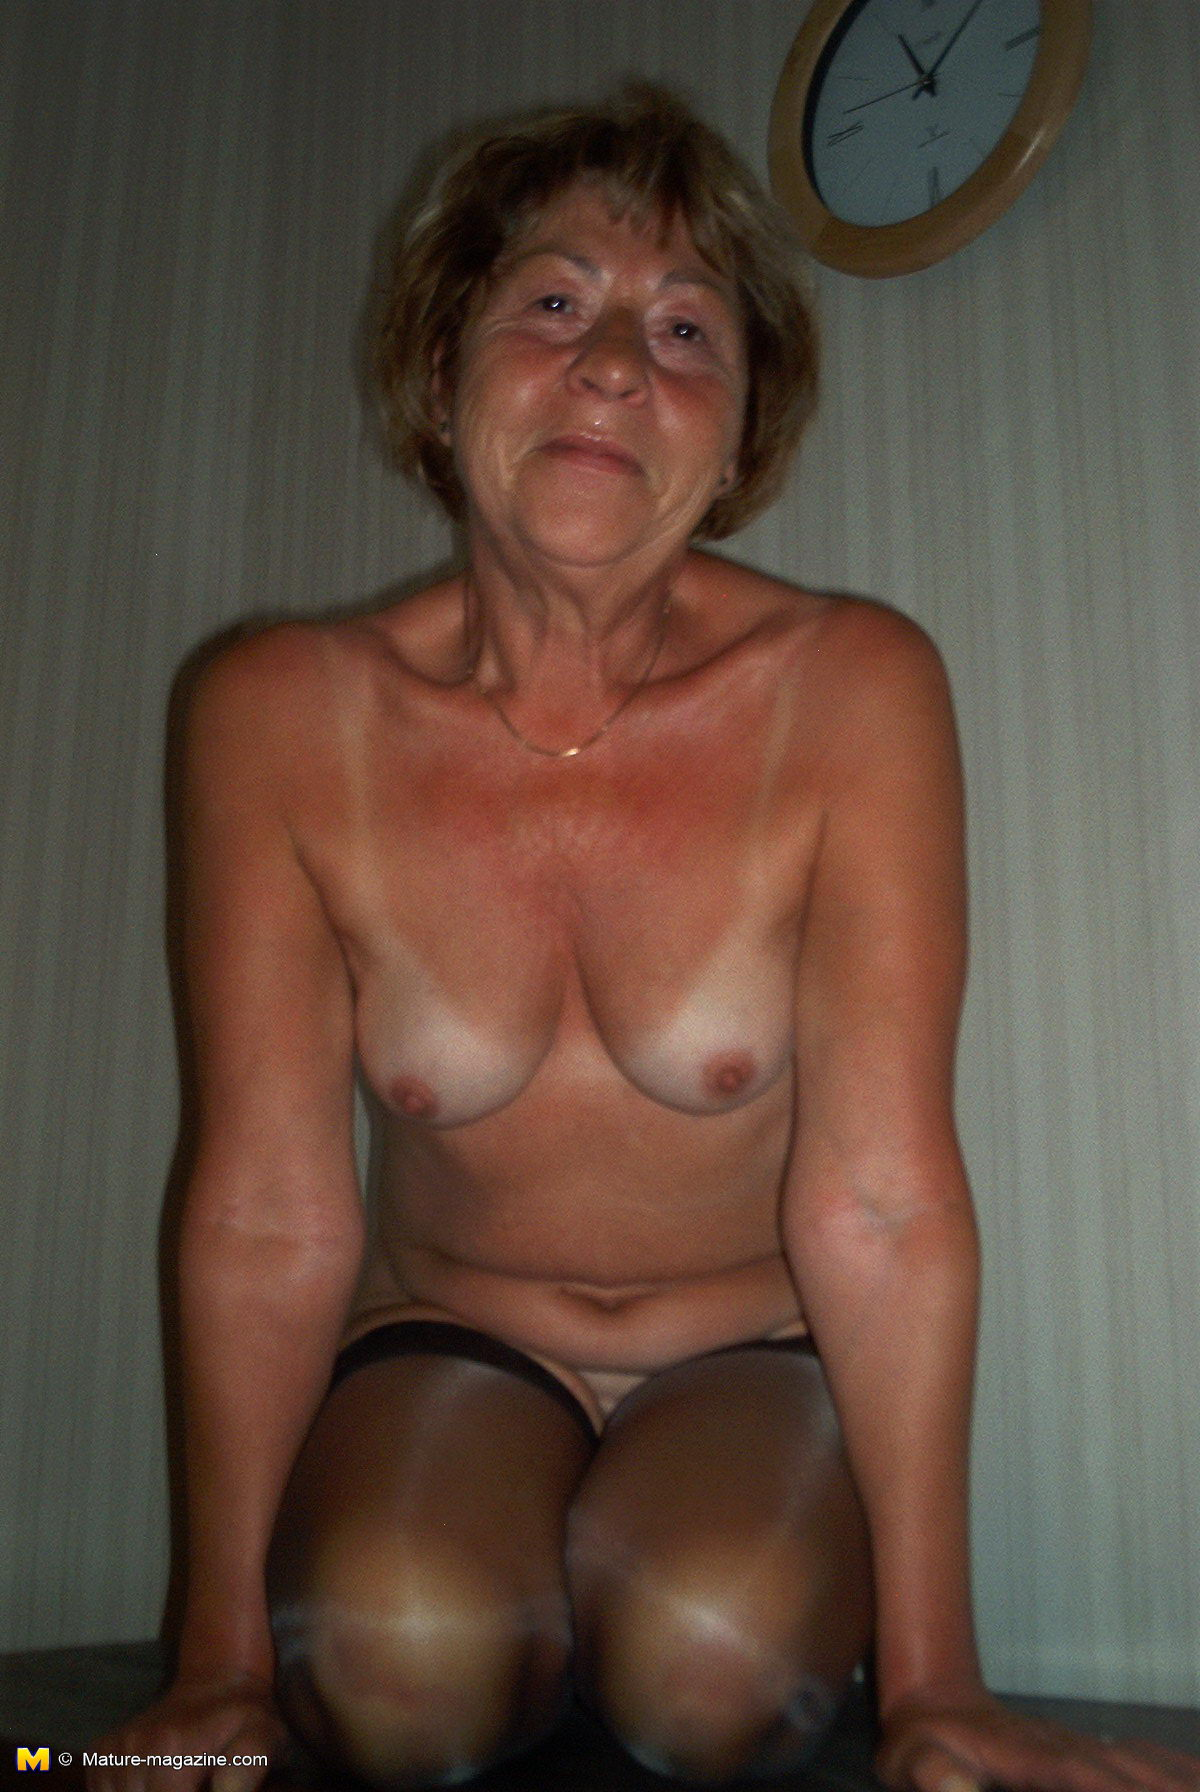 Amateur Mature Porn Gallery mature amateur poses naked for the camera | free download